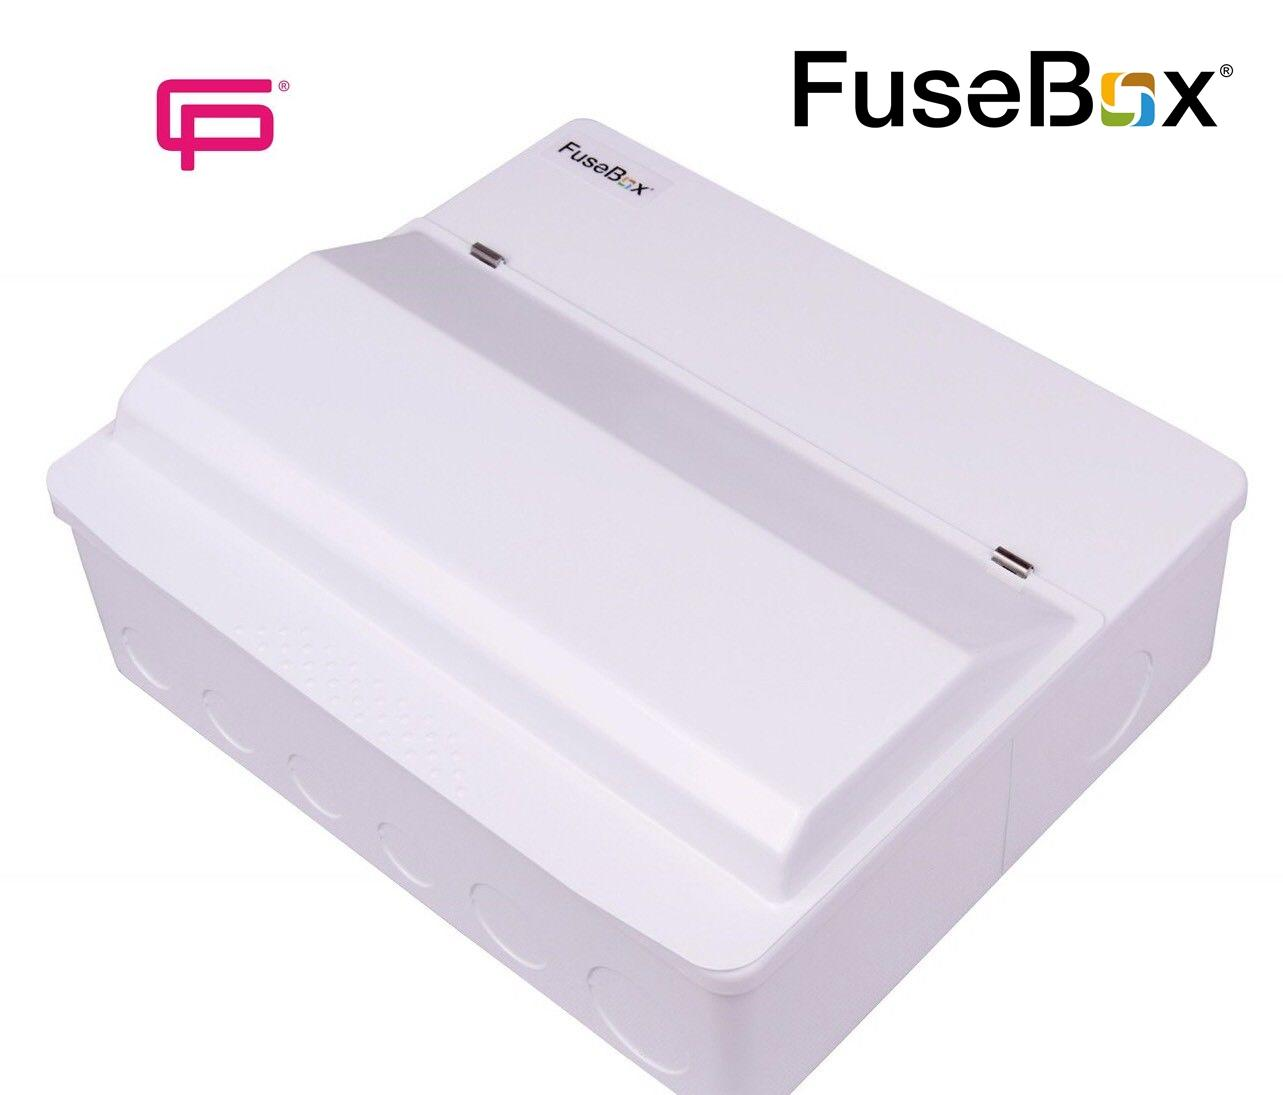 F110pr Fusebox 100a Mains 10 Way Rcbo Populated Metal Consumer Unit Fuse Box Codef110pr